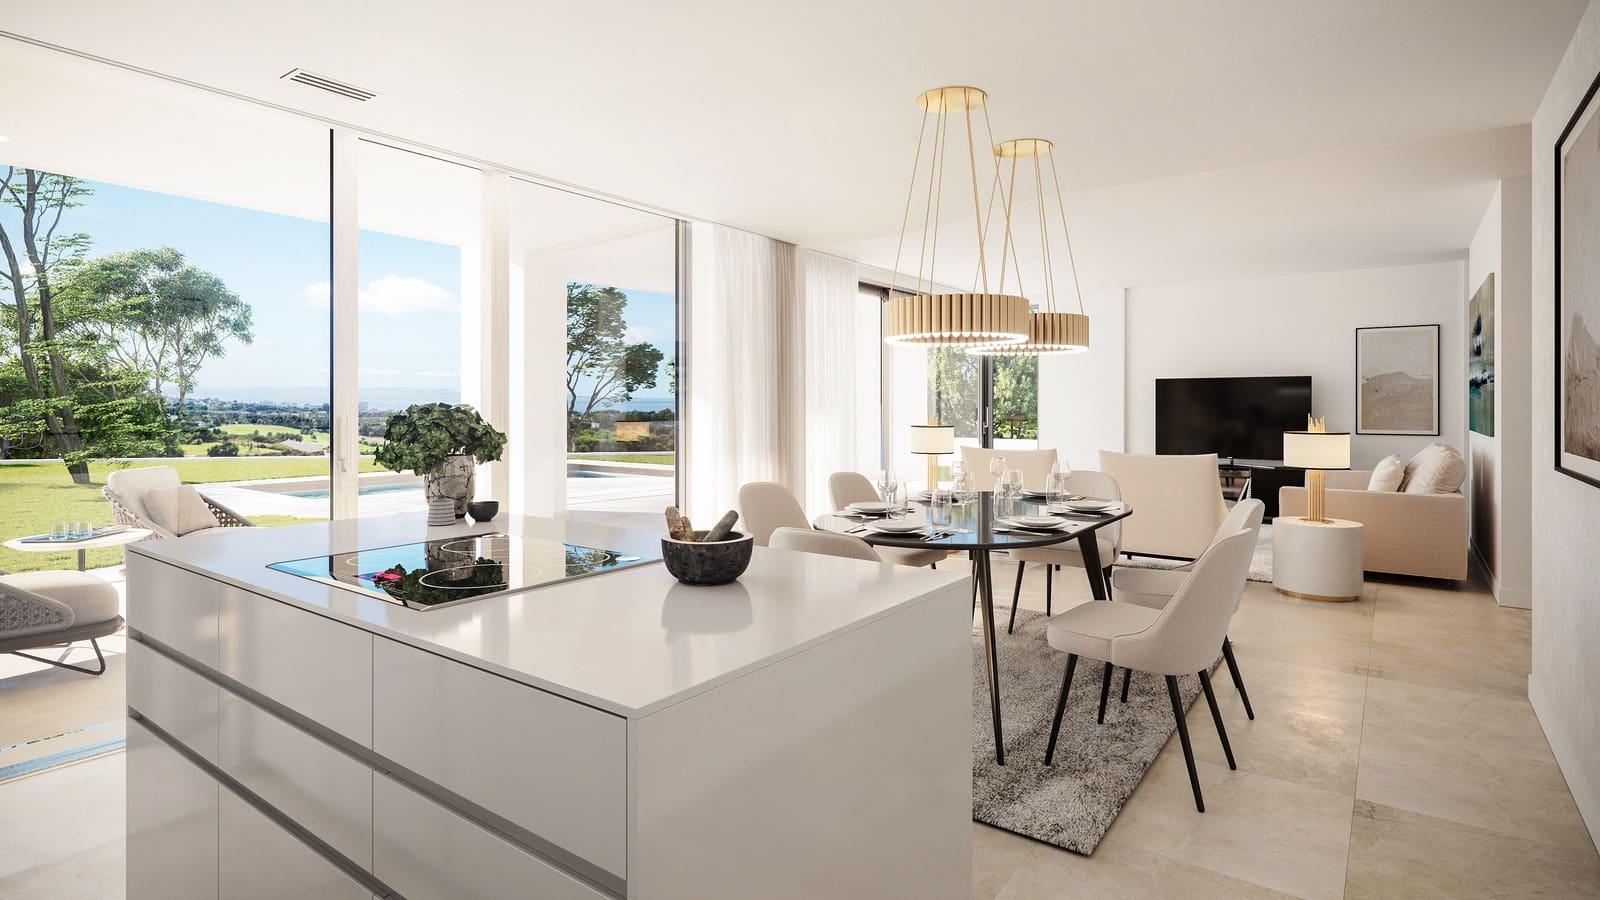 4 bedroom Apartment for sale in Marbella with pool garage - € 913,000 (Ref: 5931025)